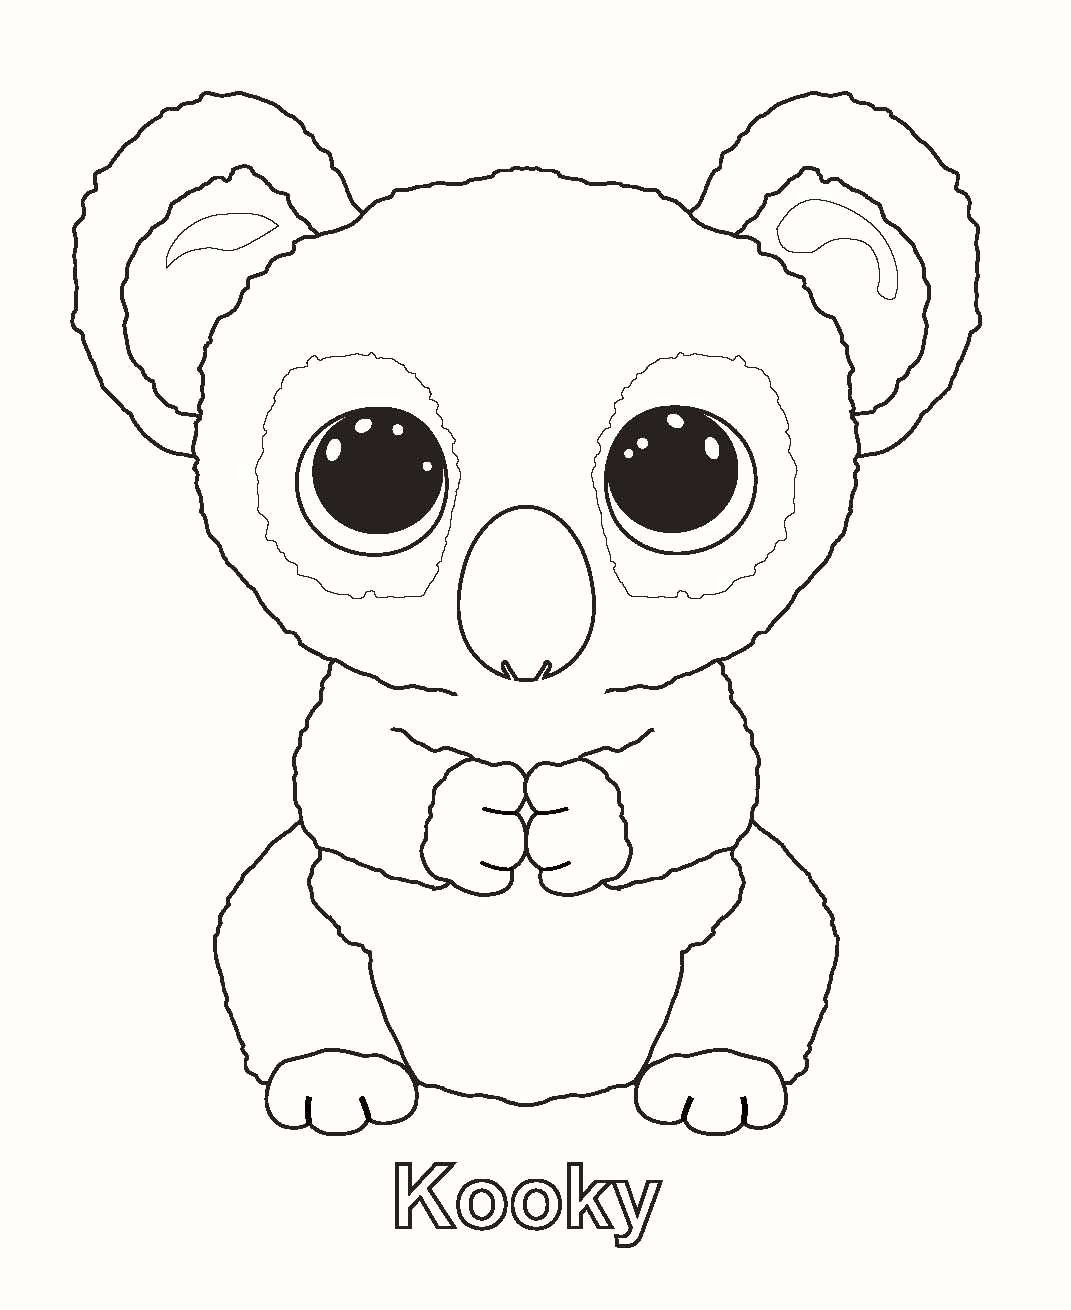 Free Printable Beanie Boo Coloring Pages Beautiful Beanie Boo - Free Printable Beanie Boo Coloring Pages